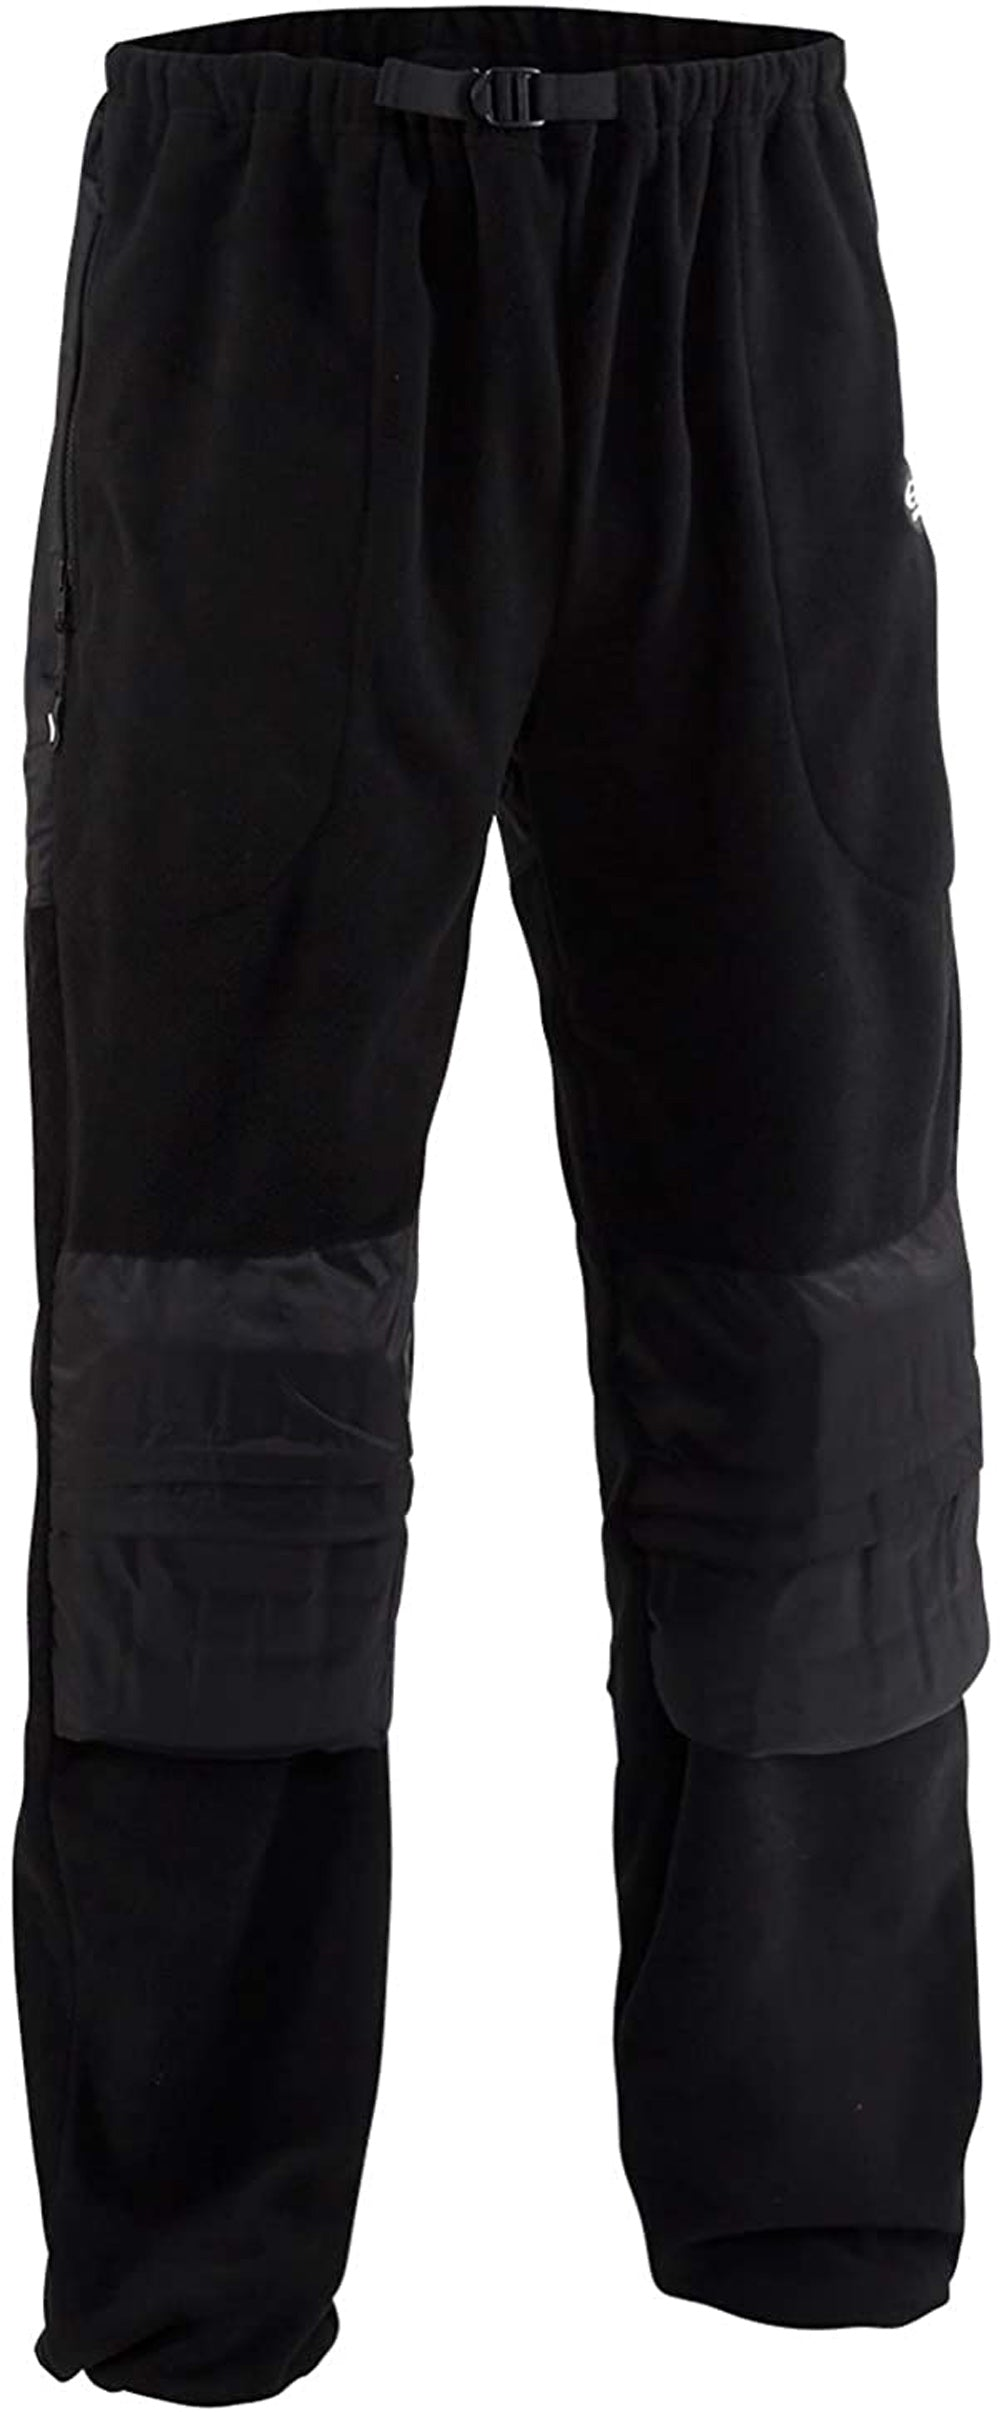 Viking Fleece Pant in Black color from the front view